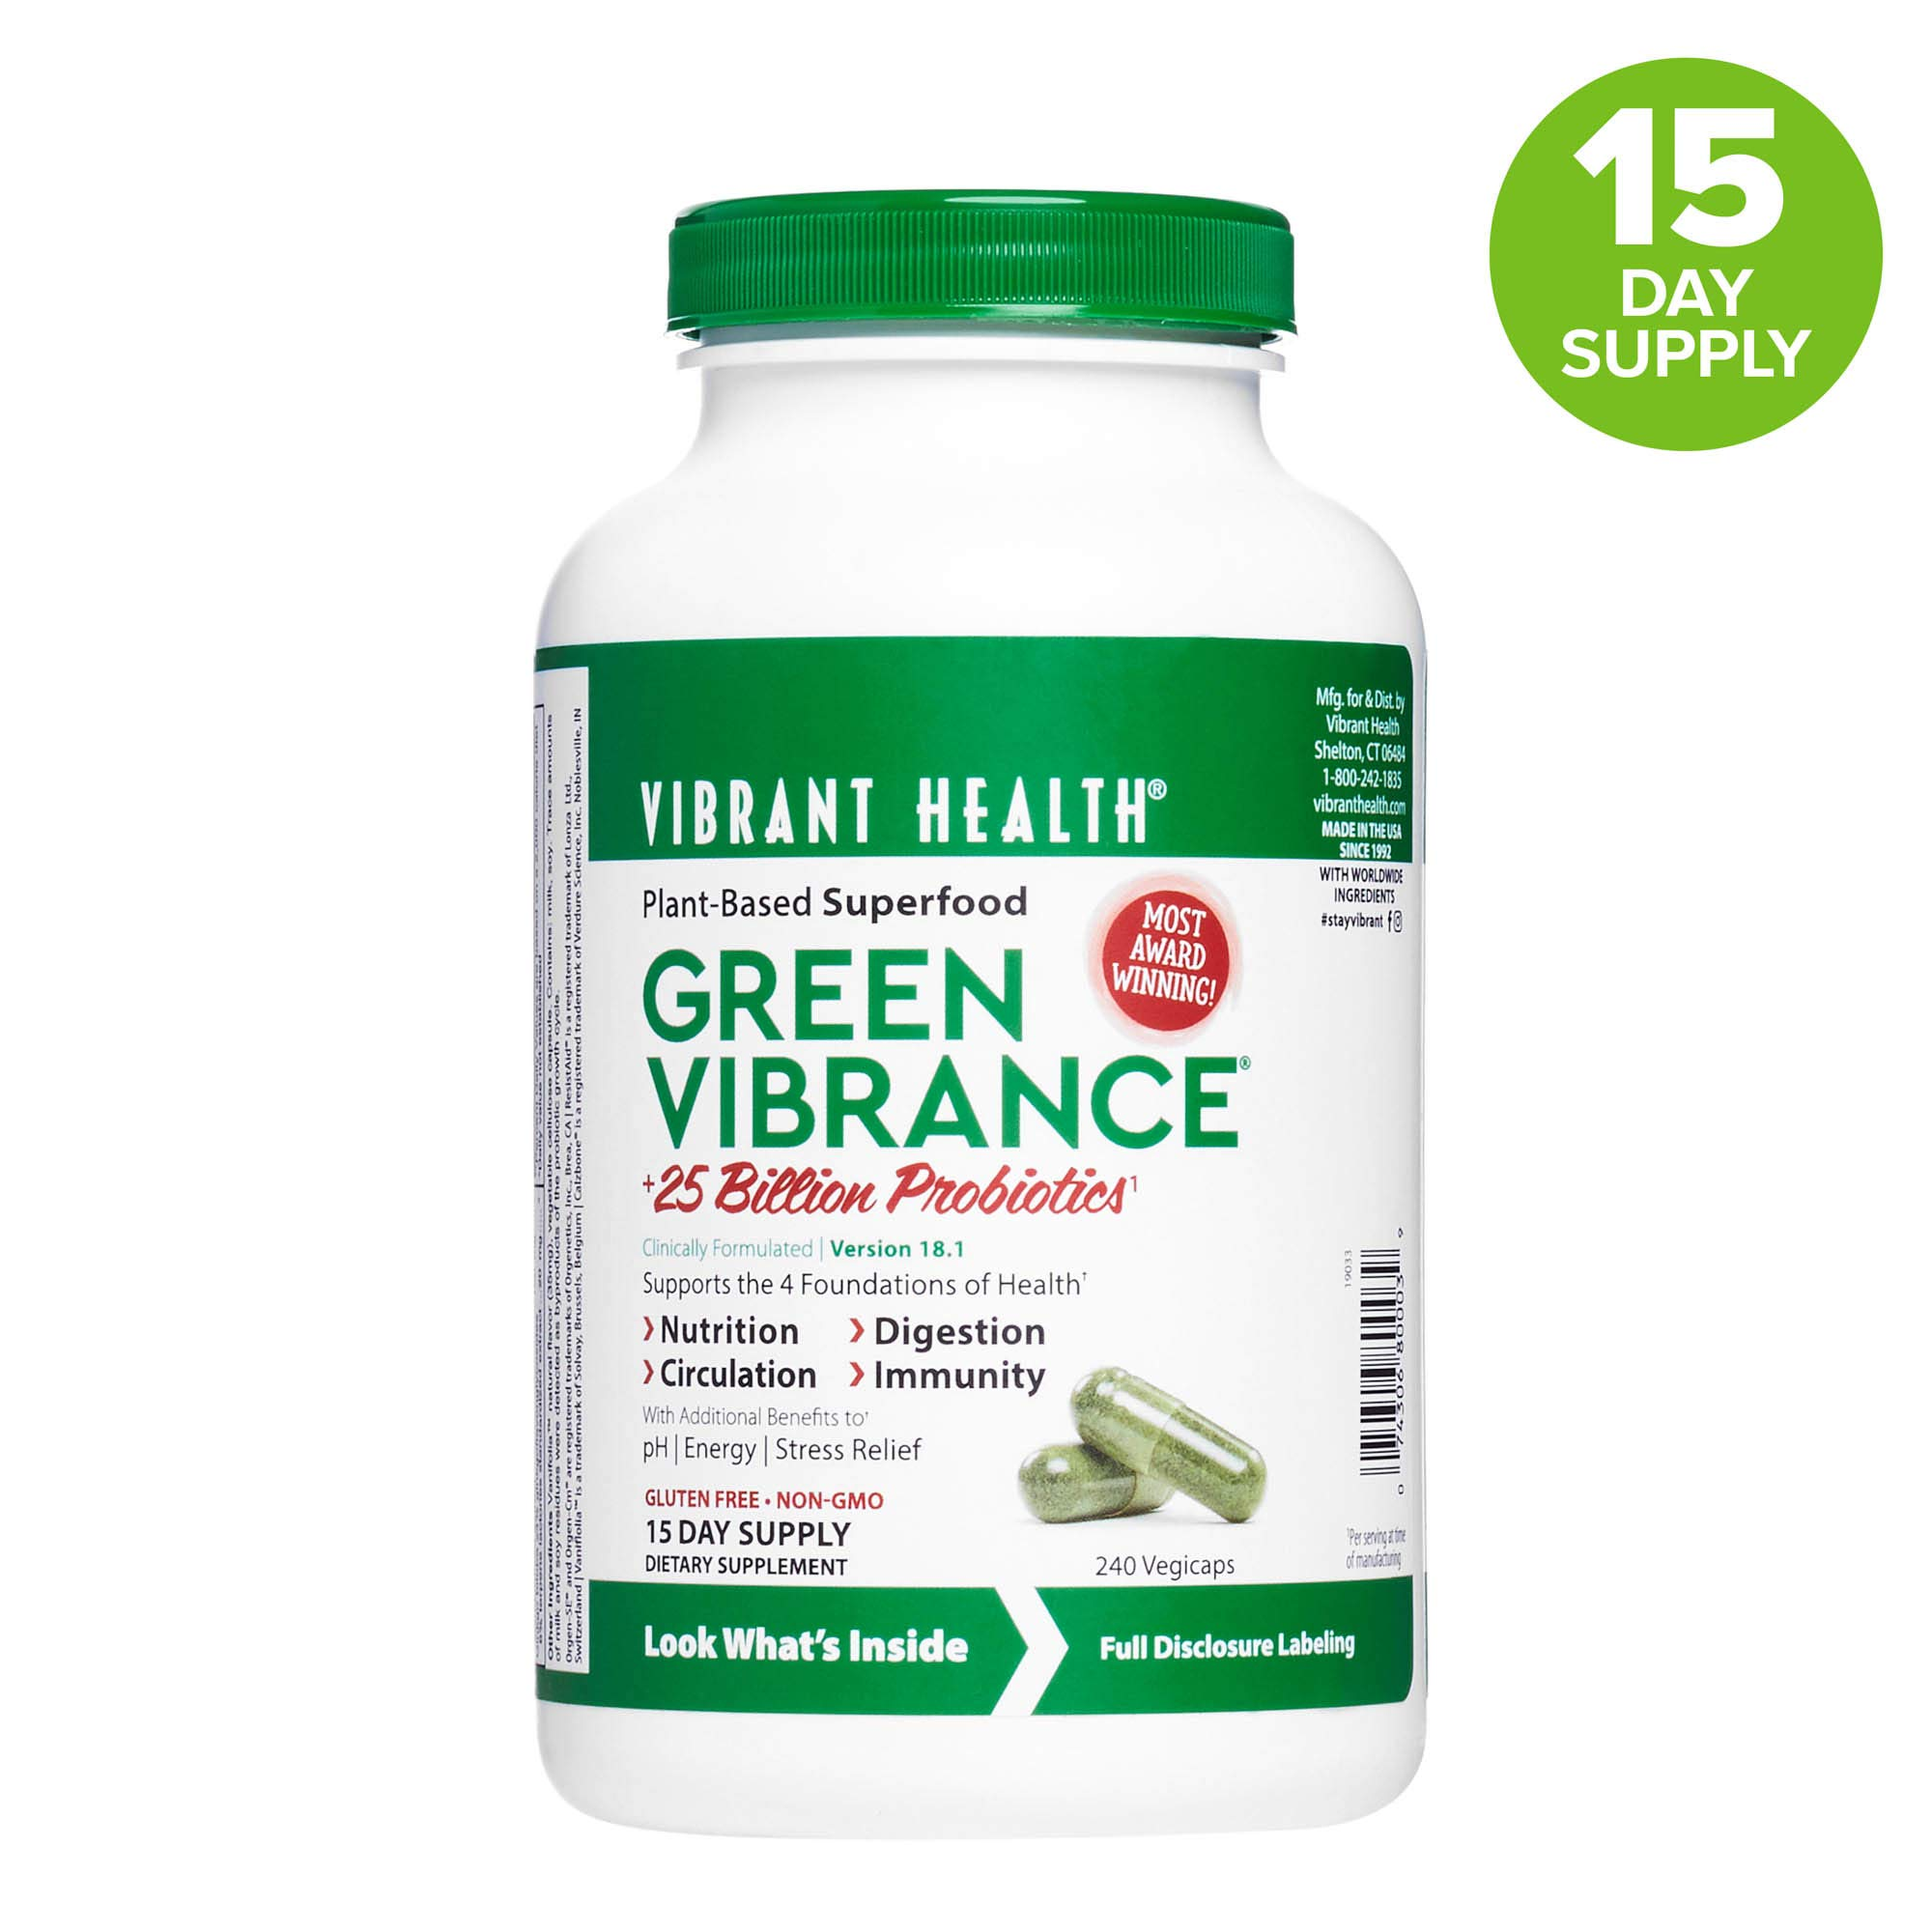 Vibrant Health, Green Vibrance, Vegetarian Superfood Capsules with Over 70 Ingredients, 25 Billion Probiotics, 240 capsules (15 servings) (FFP) by Vibrant Health